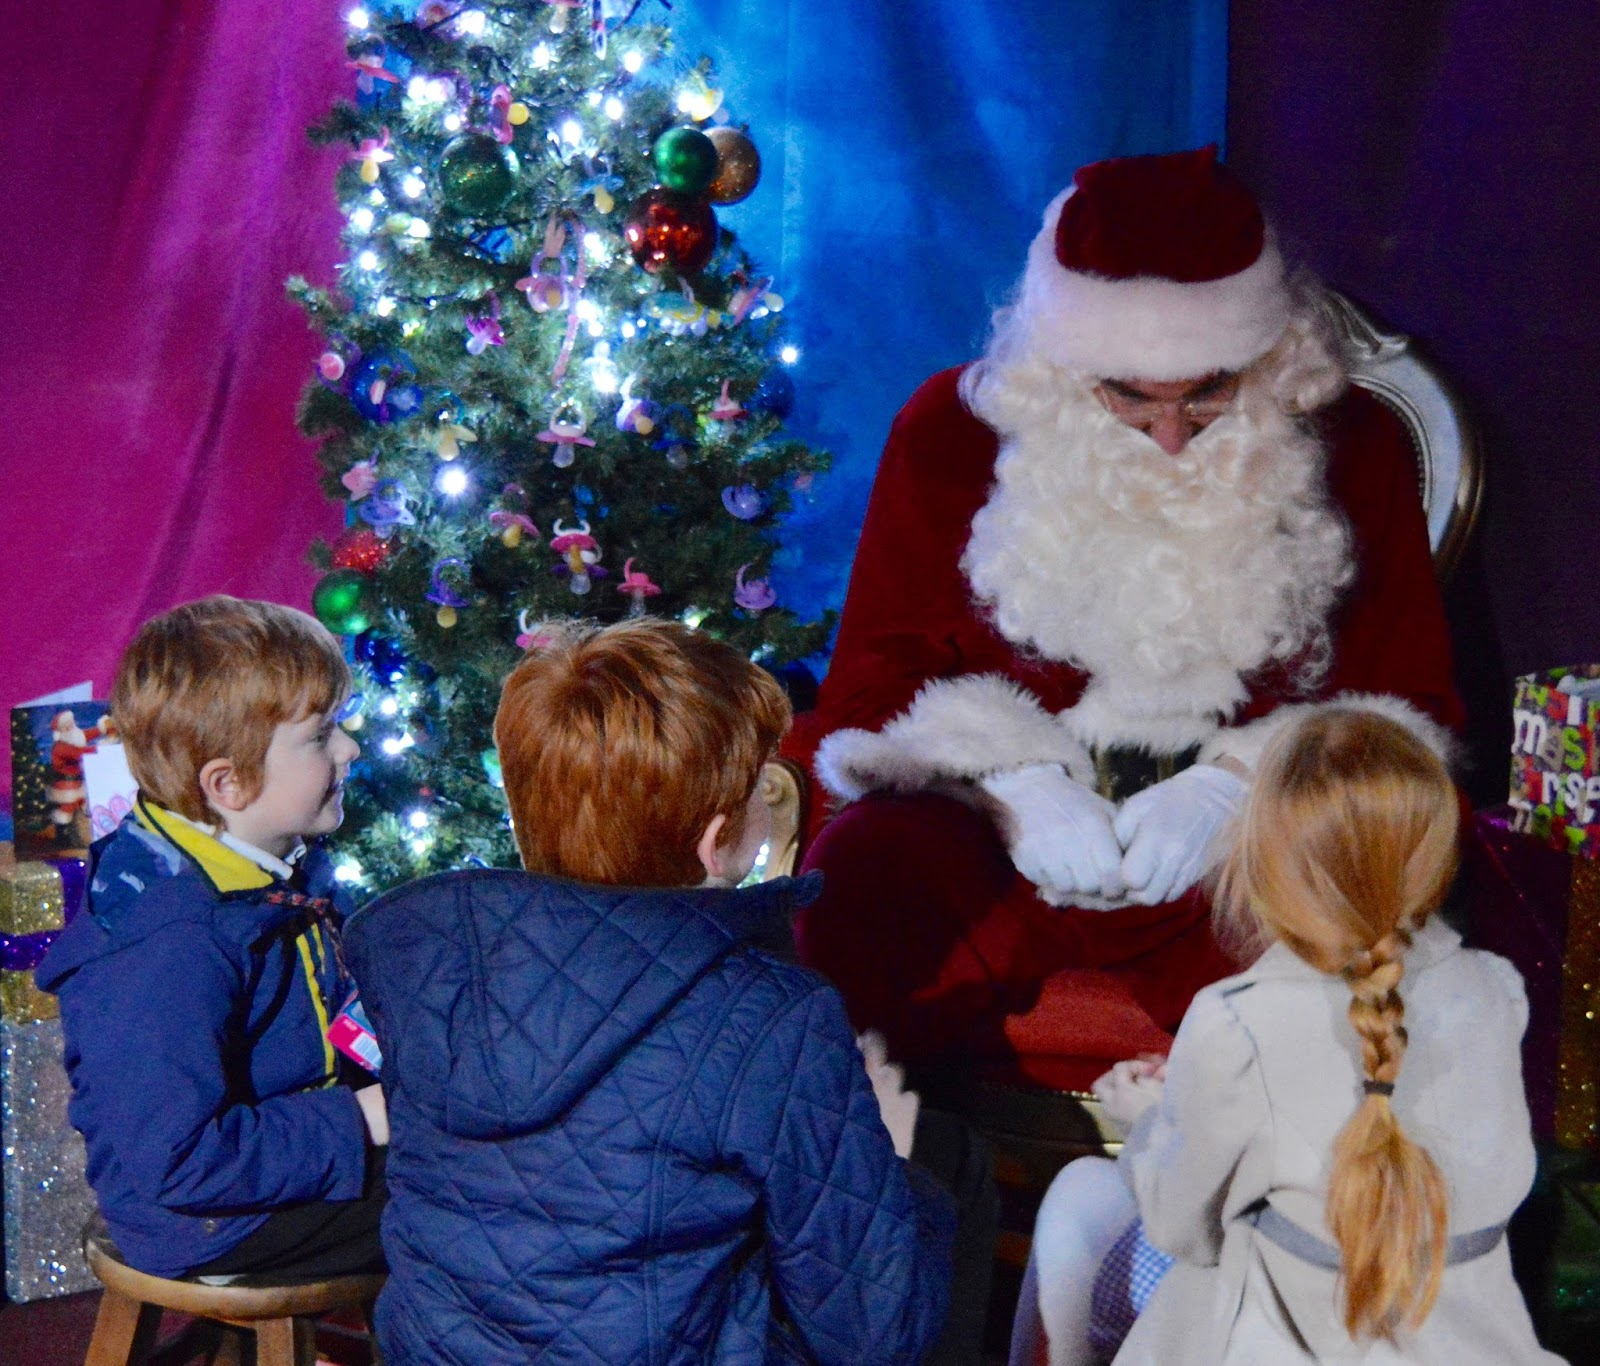 Visiting the FREE Santa's Grotto at intu Metrocentre | All You Need to Know including queue times, when's best to visit, your Playmobil Gift and photographs of Santa Claus